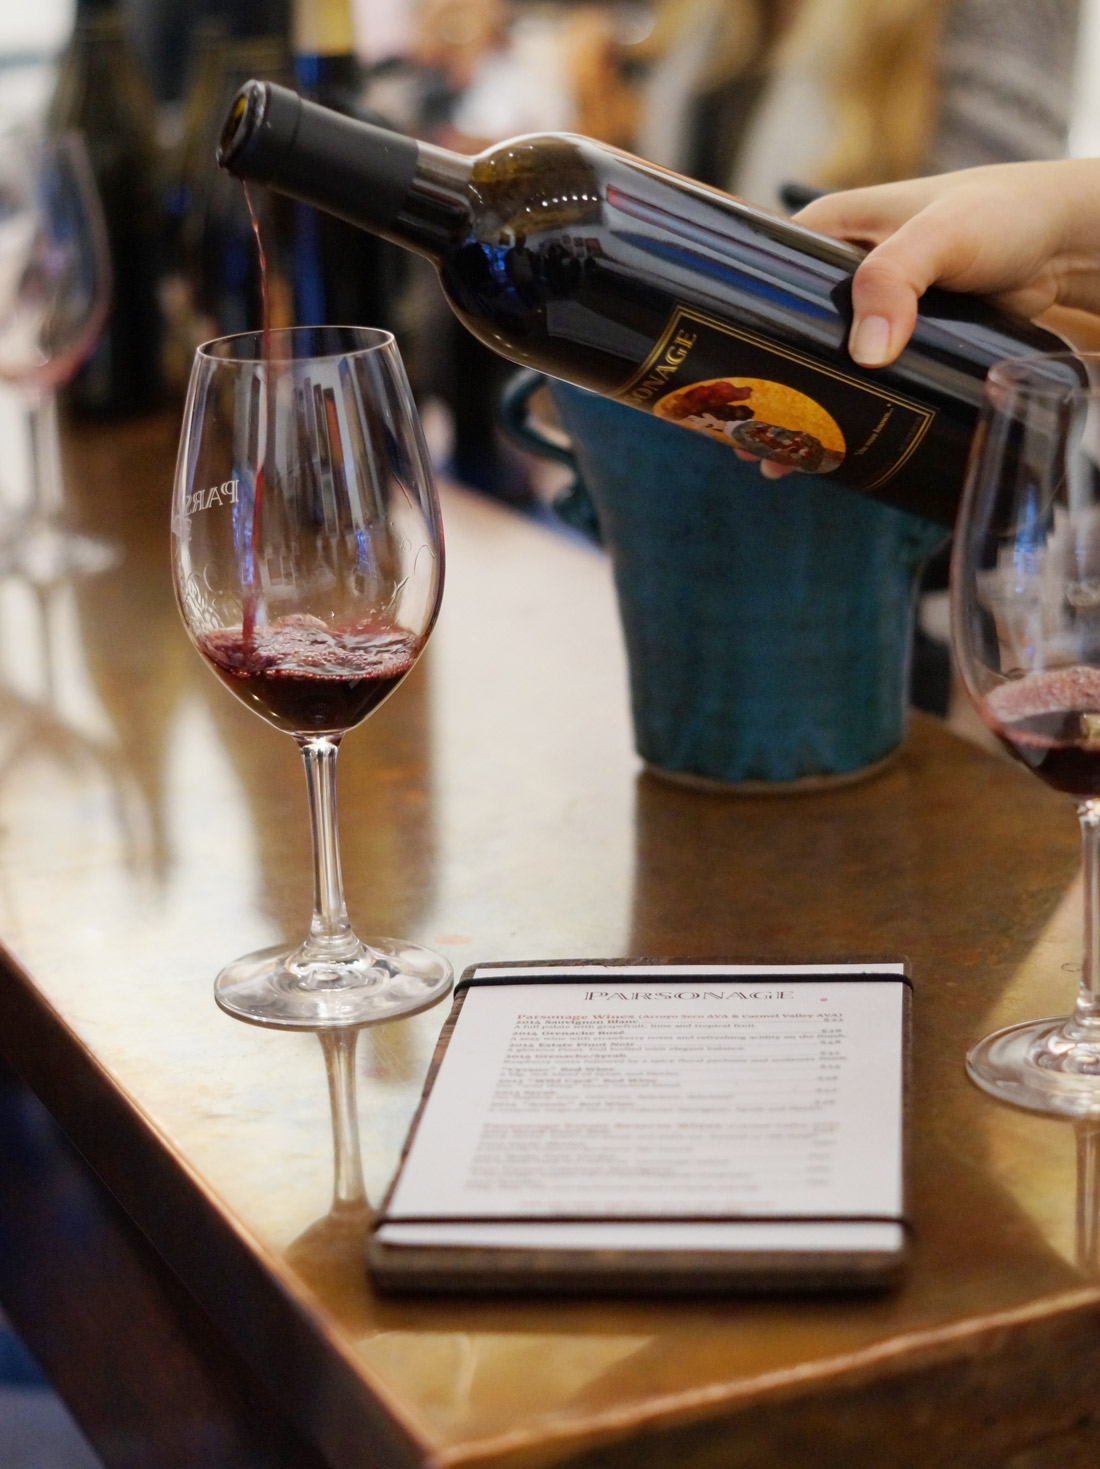 bag-at-you-ag-venture-tours-carmel-and-monterey-wine-tasting